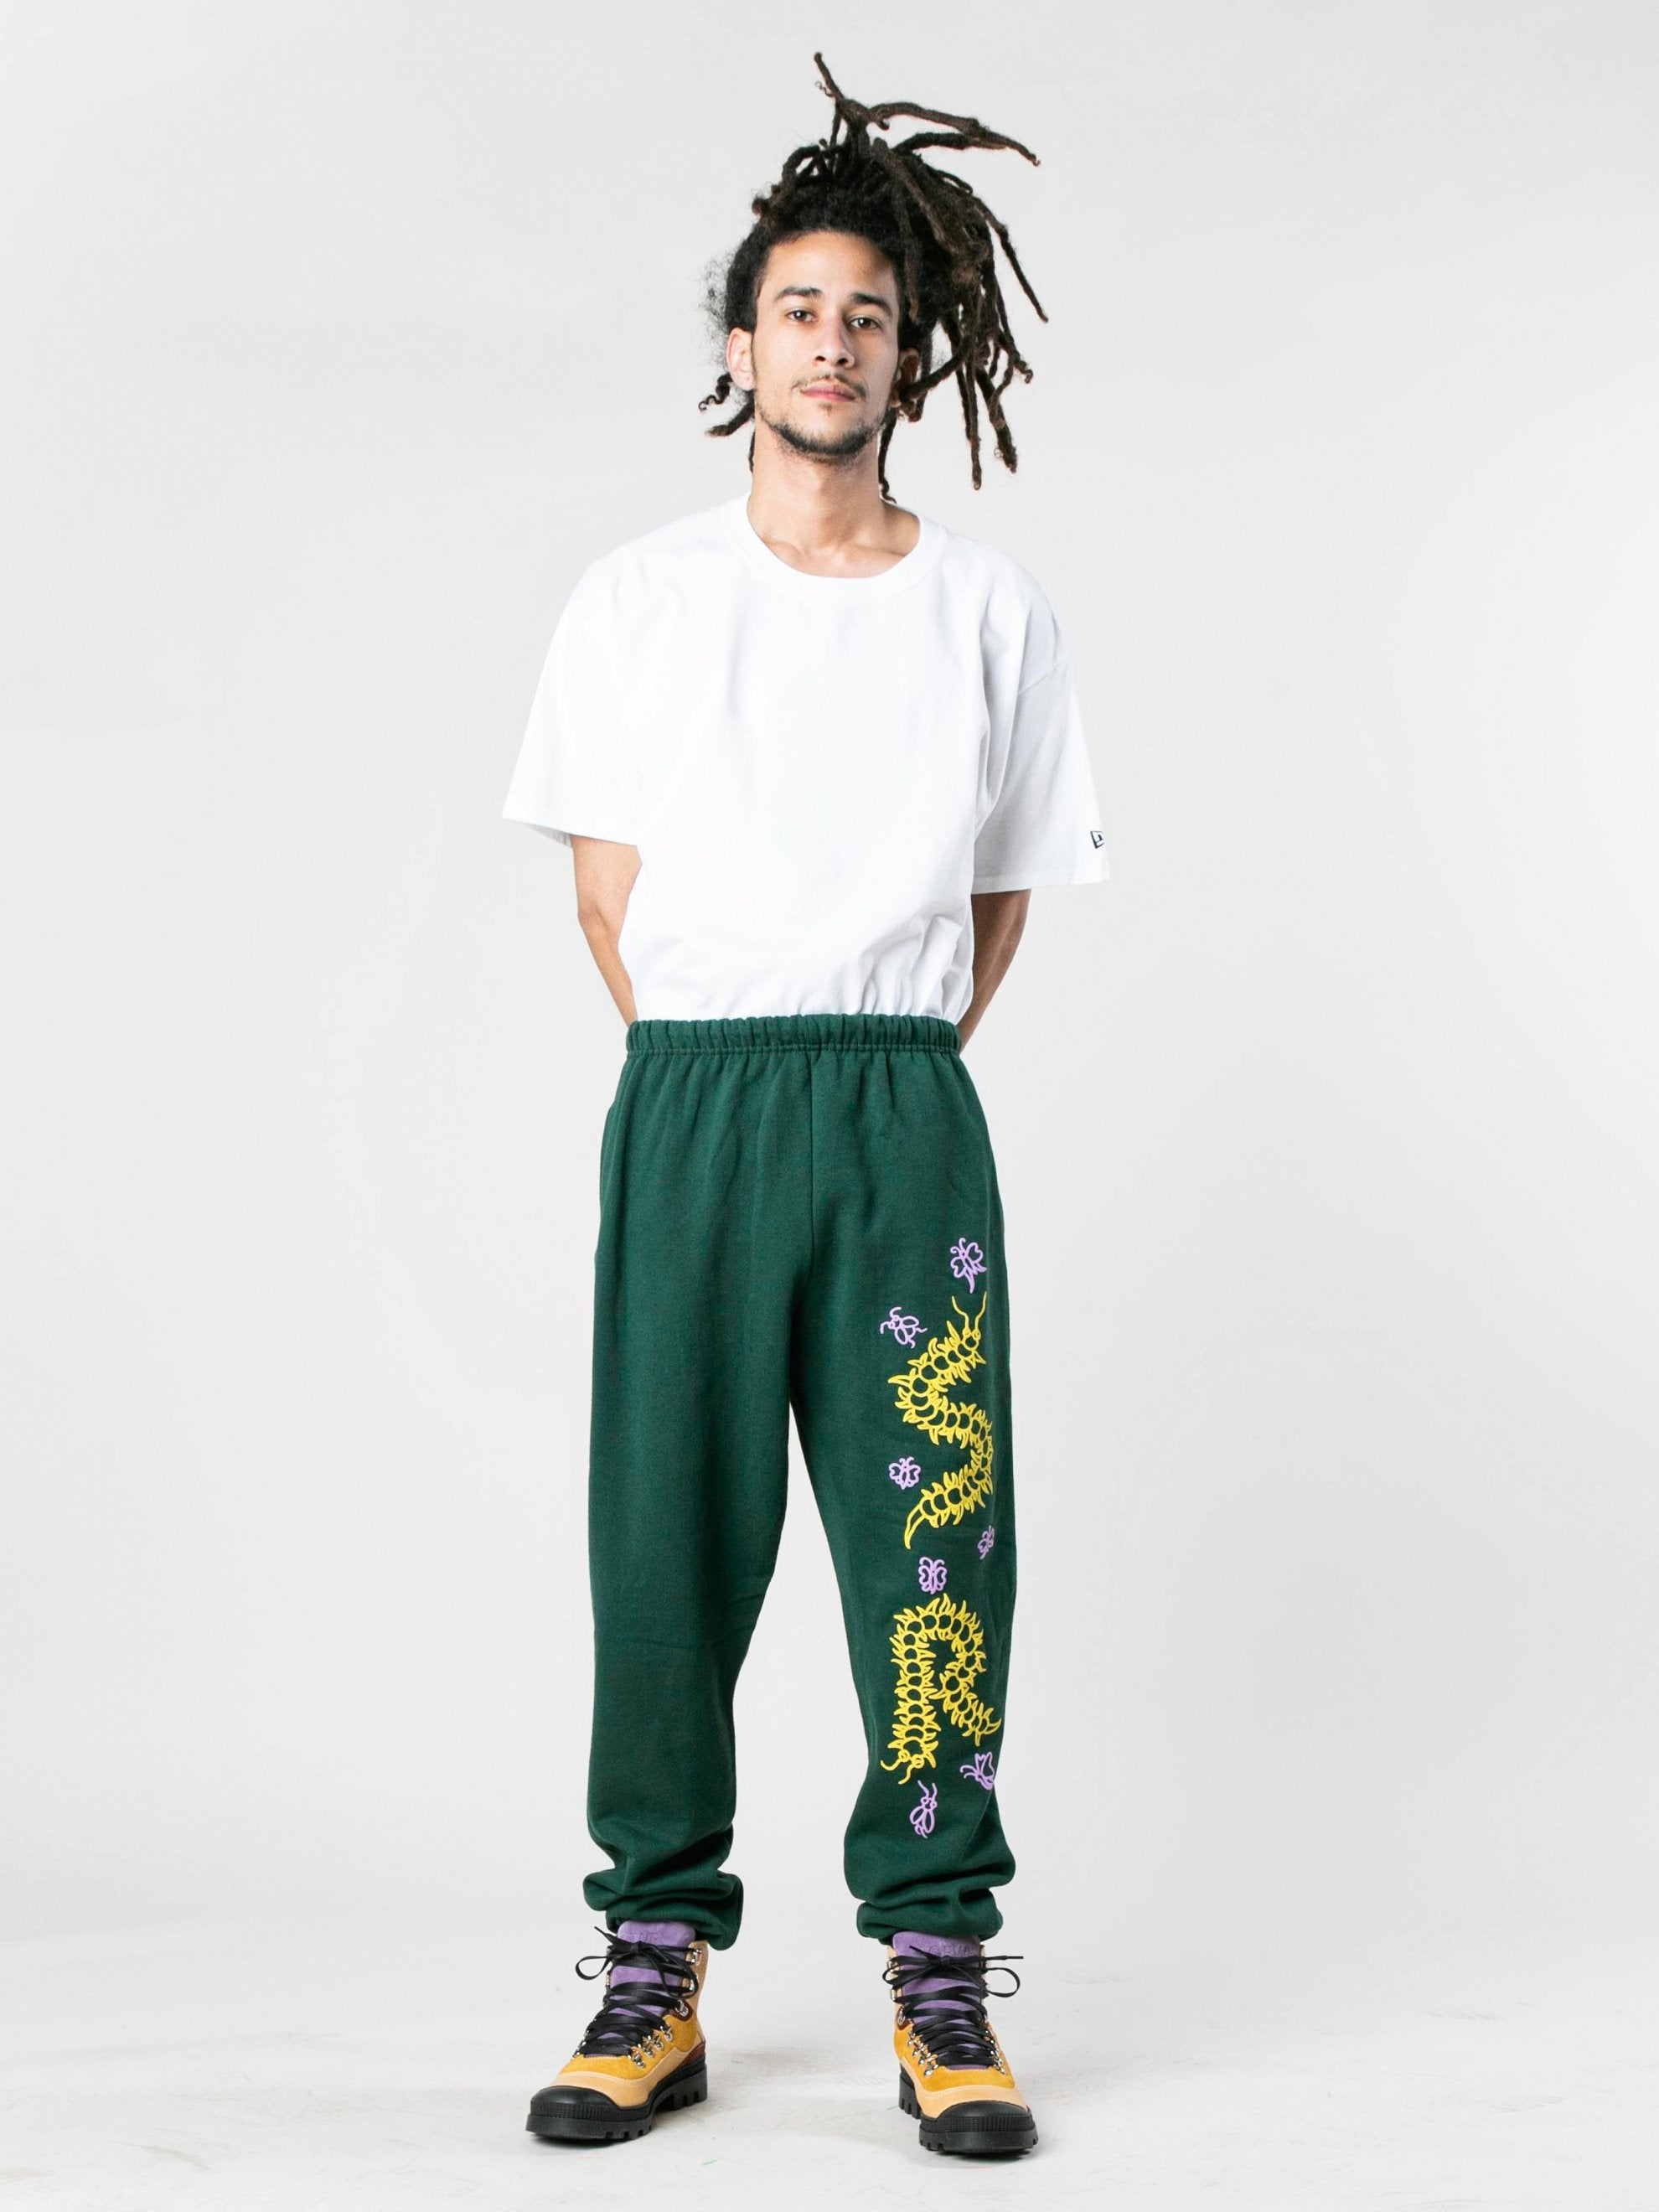 Green Caterpillar Puff Print Sweatpants 3